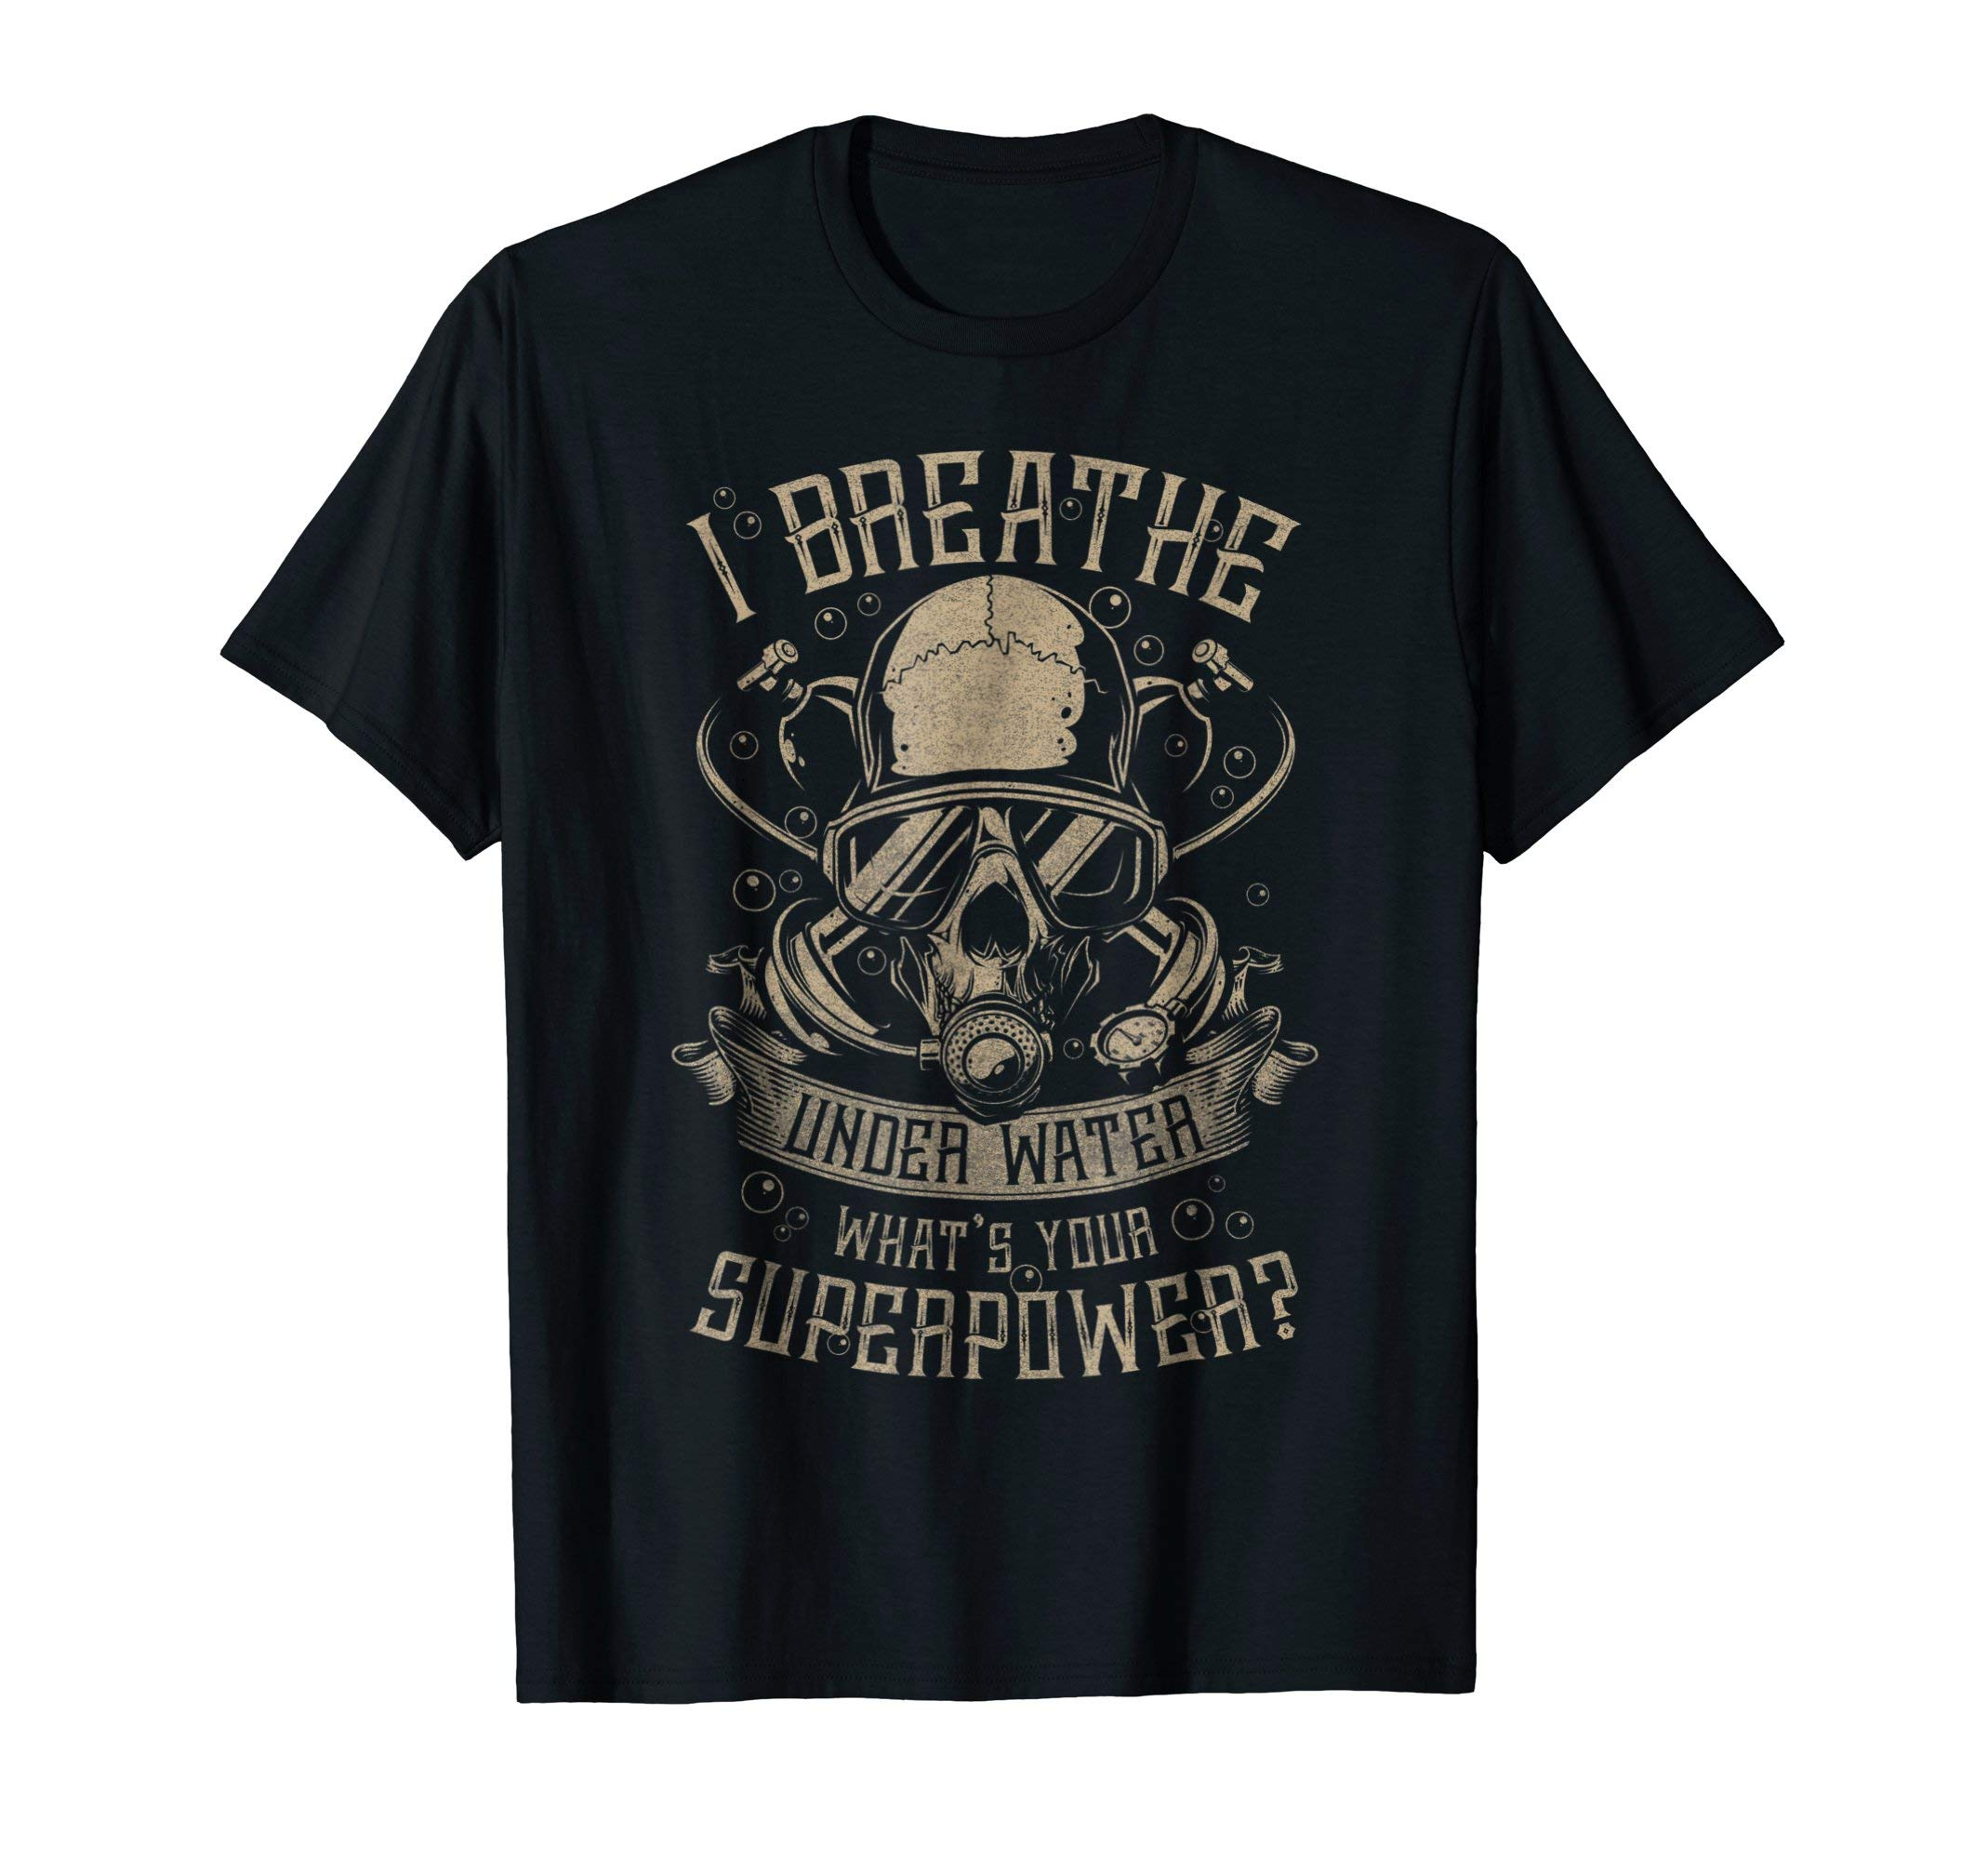 Scuba Diving - I breathe under water T-shirt by Scuba T-Shirts